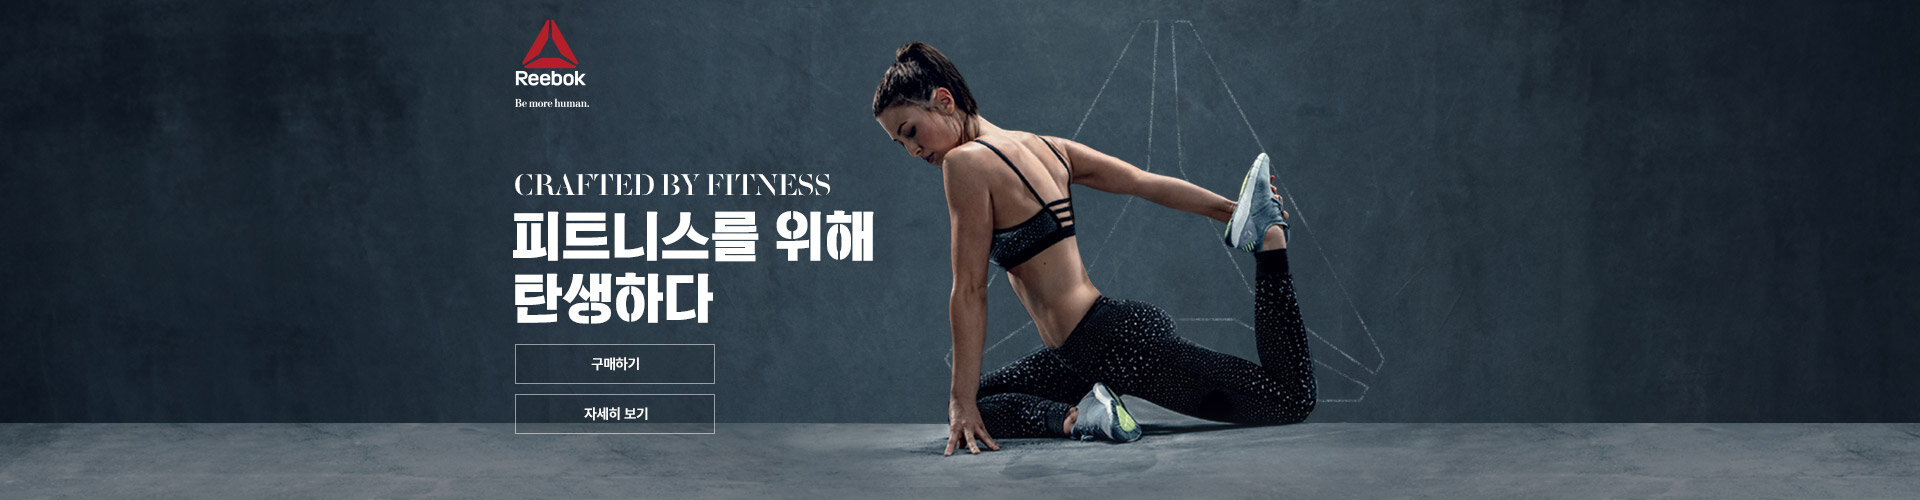 Crafted by Fitness